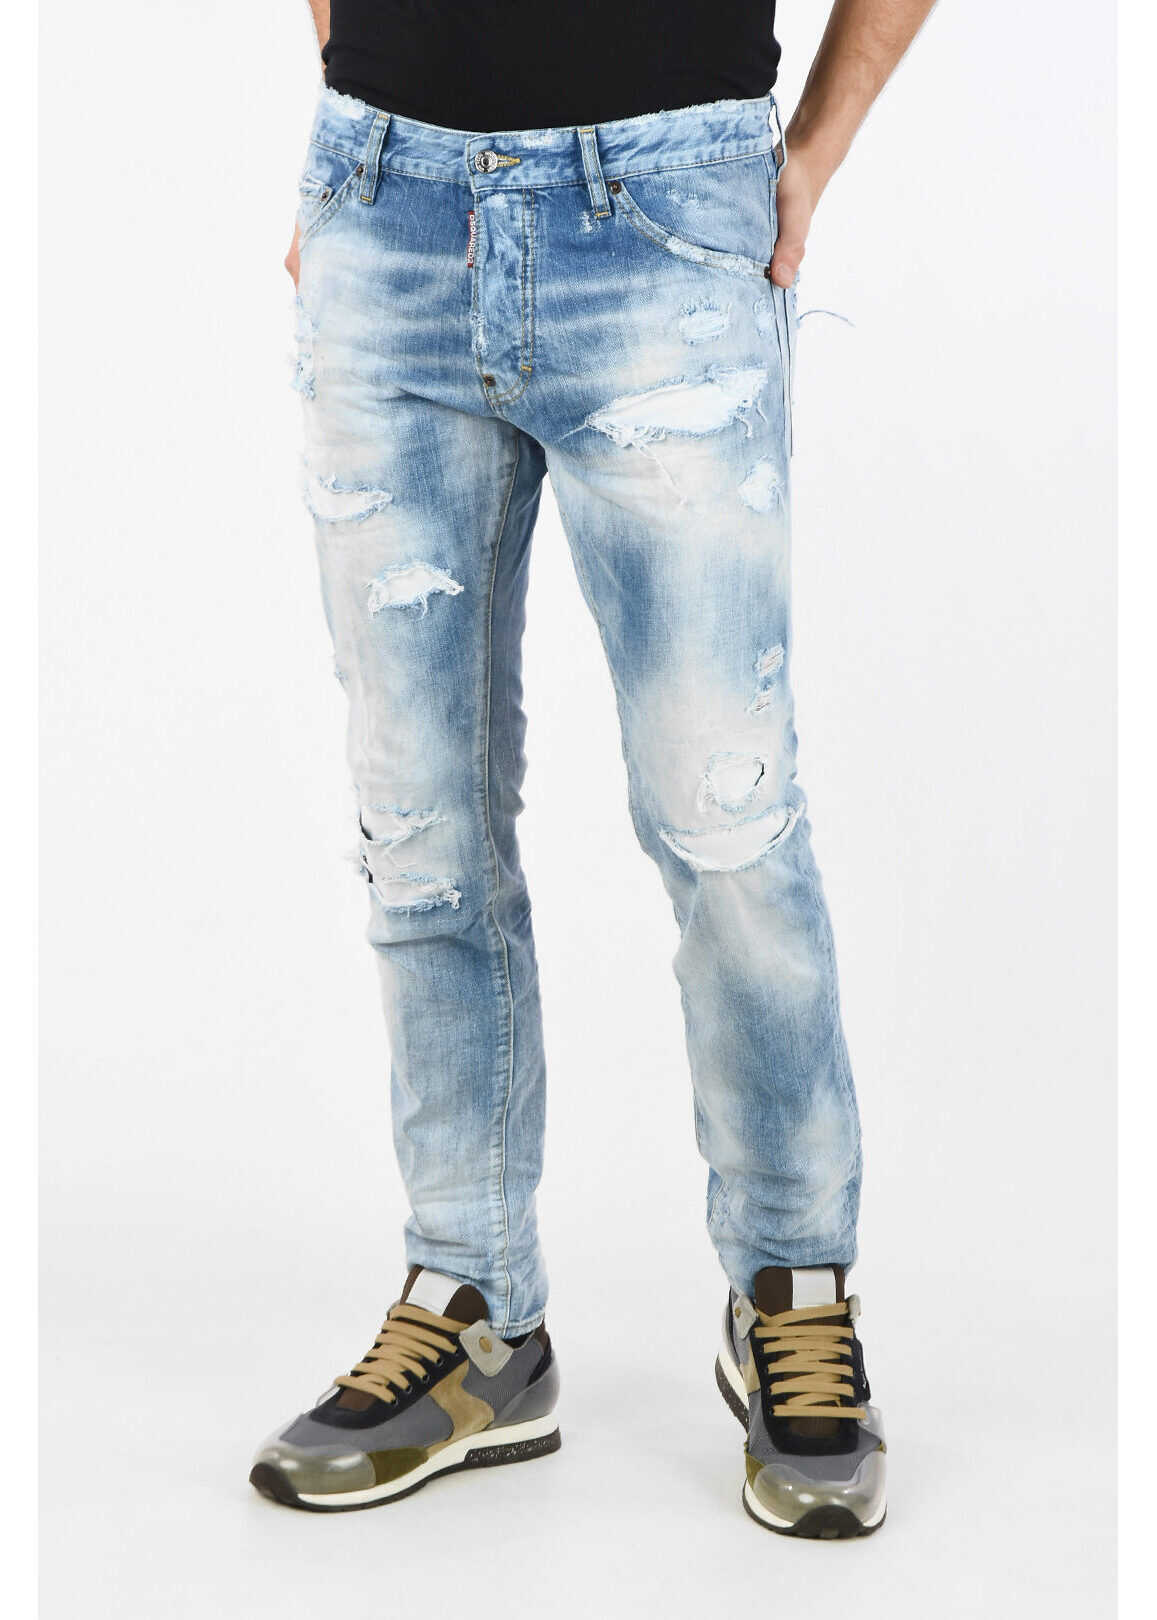 DSQUARED2 17cm Distressed COOL GUY Jeans BLUE imagine